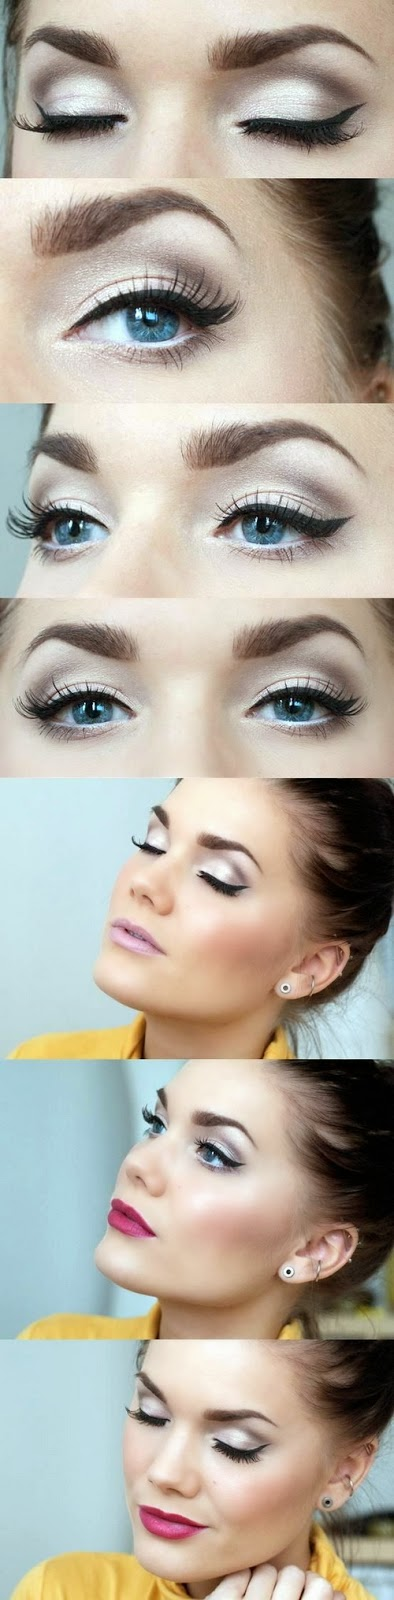 asian-makeup-tutorials-eye-bags